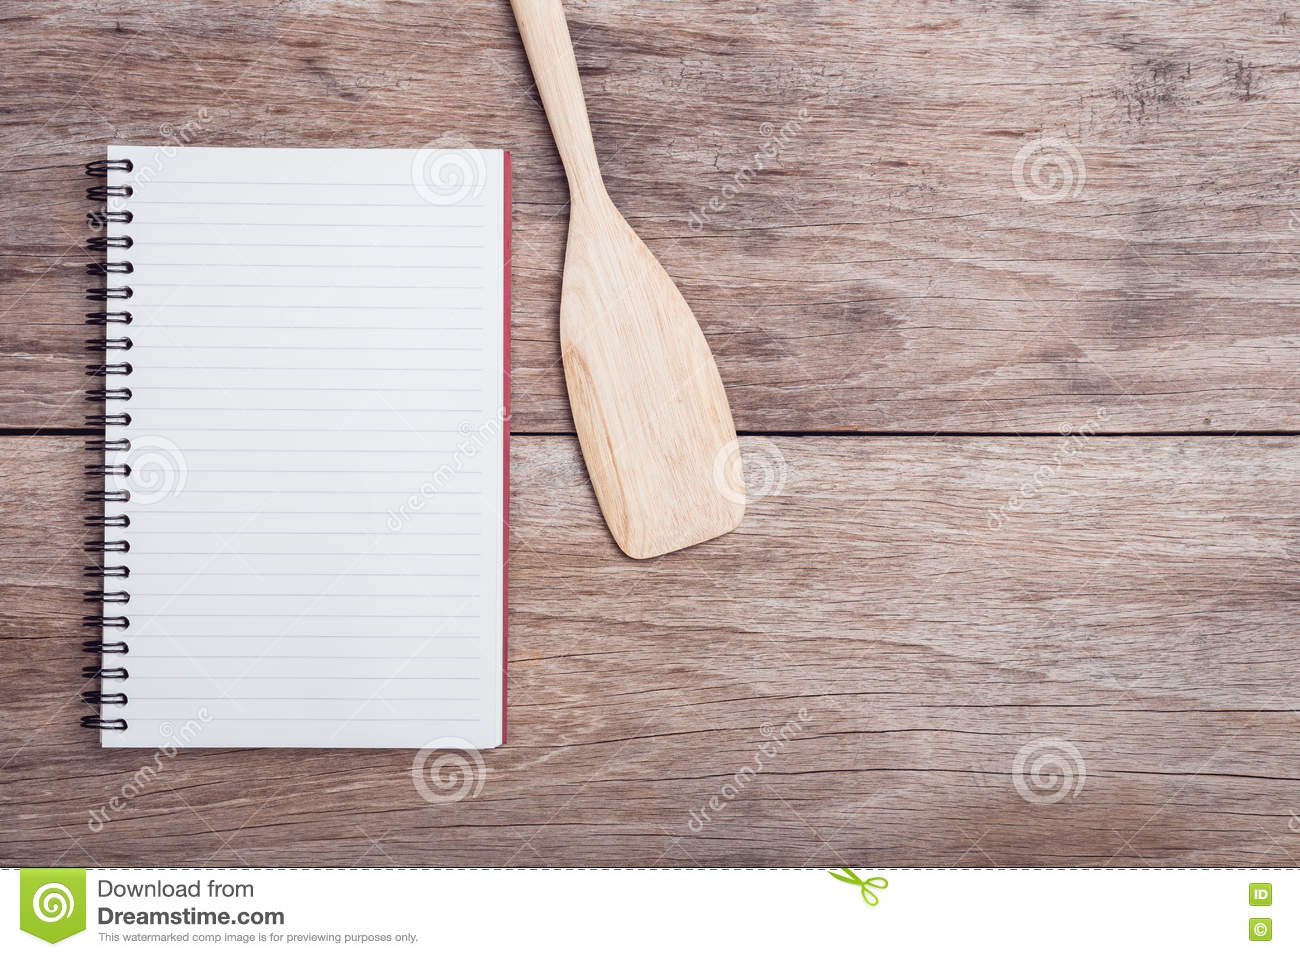 Cooking wooden spatula and lined paper on table top